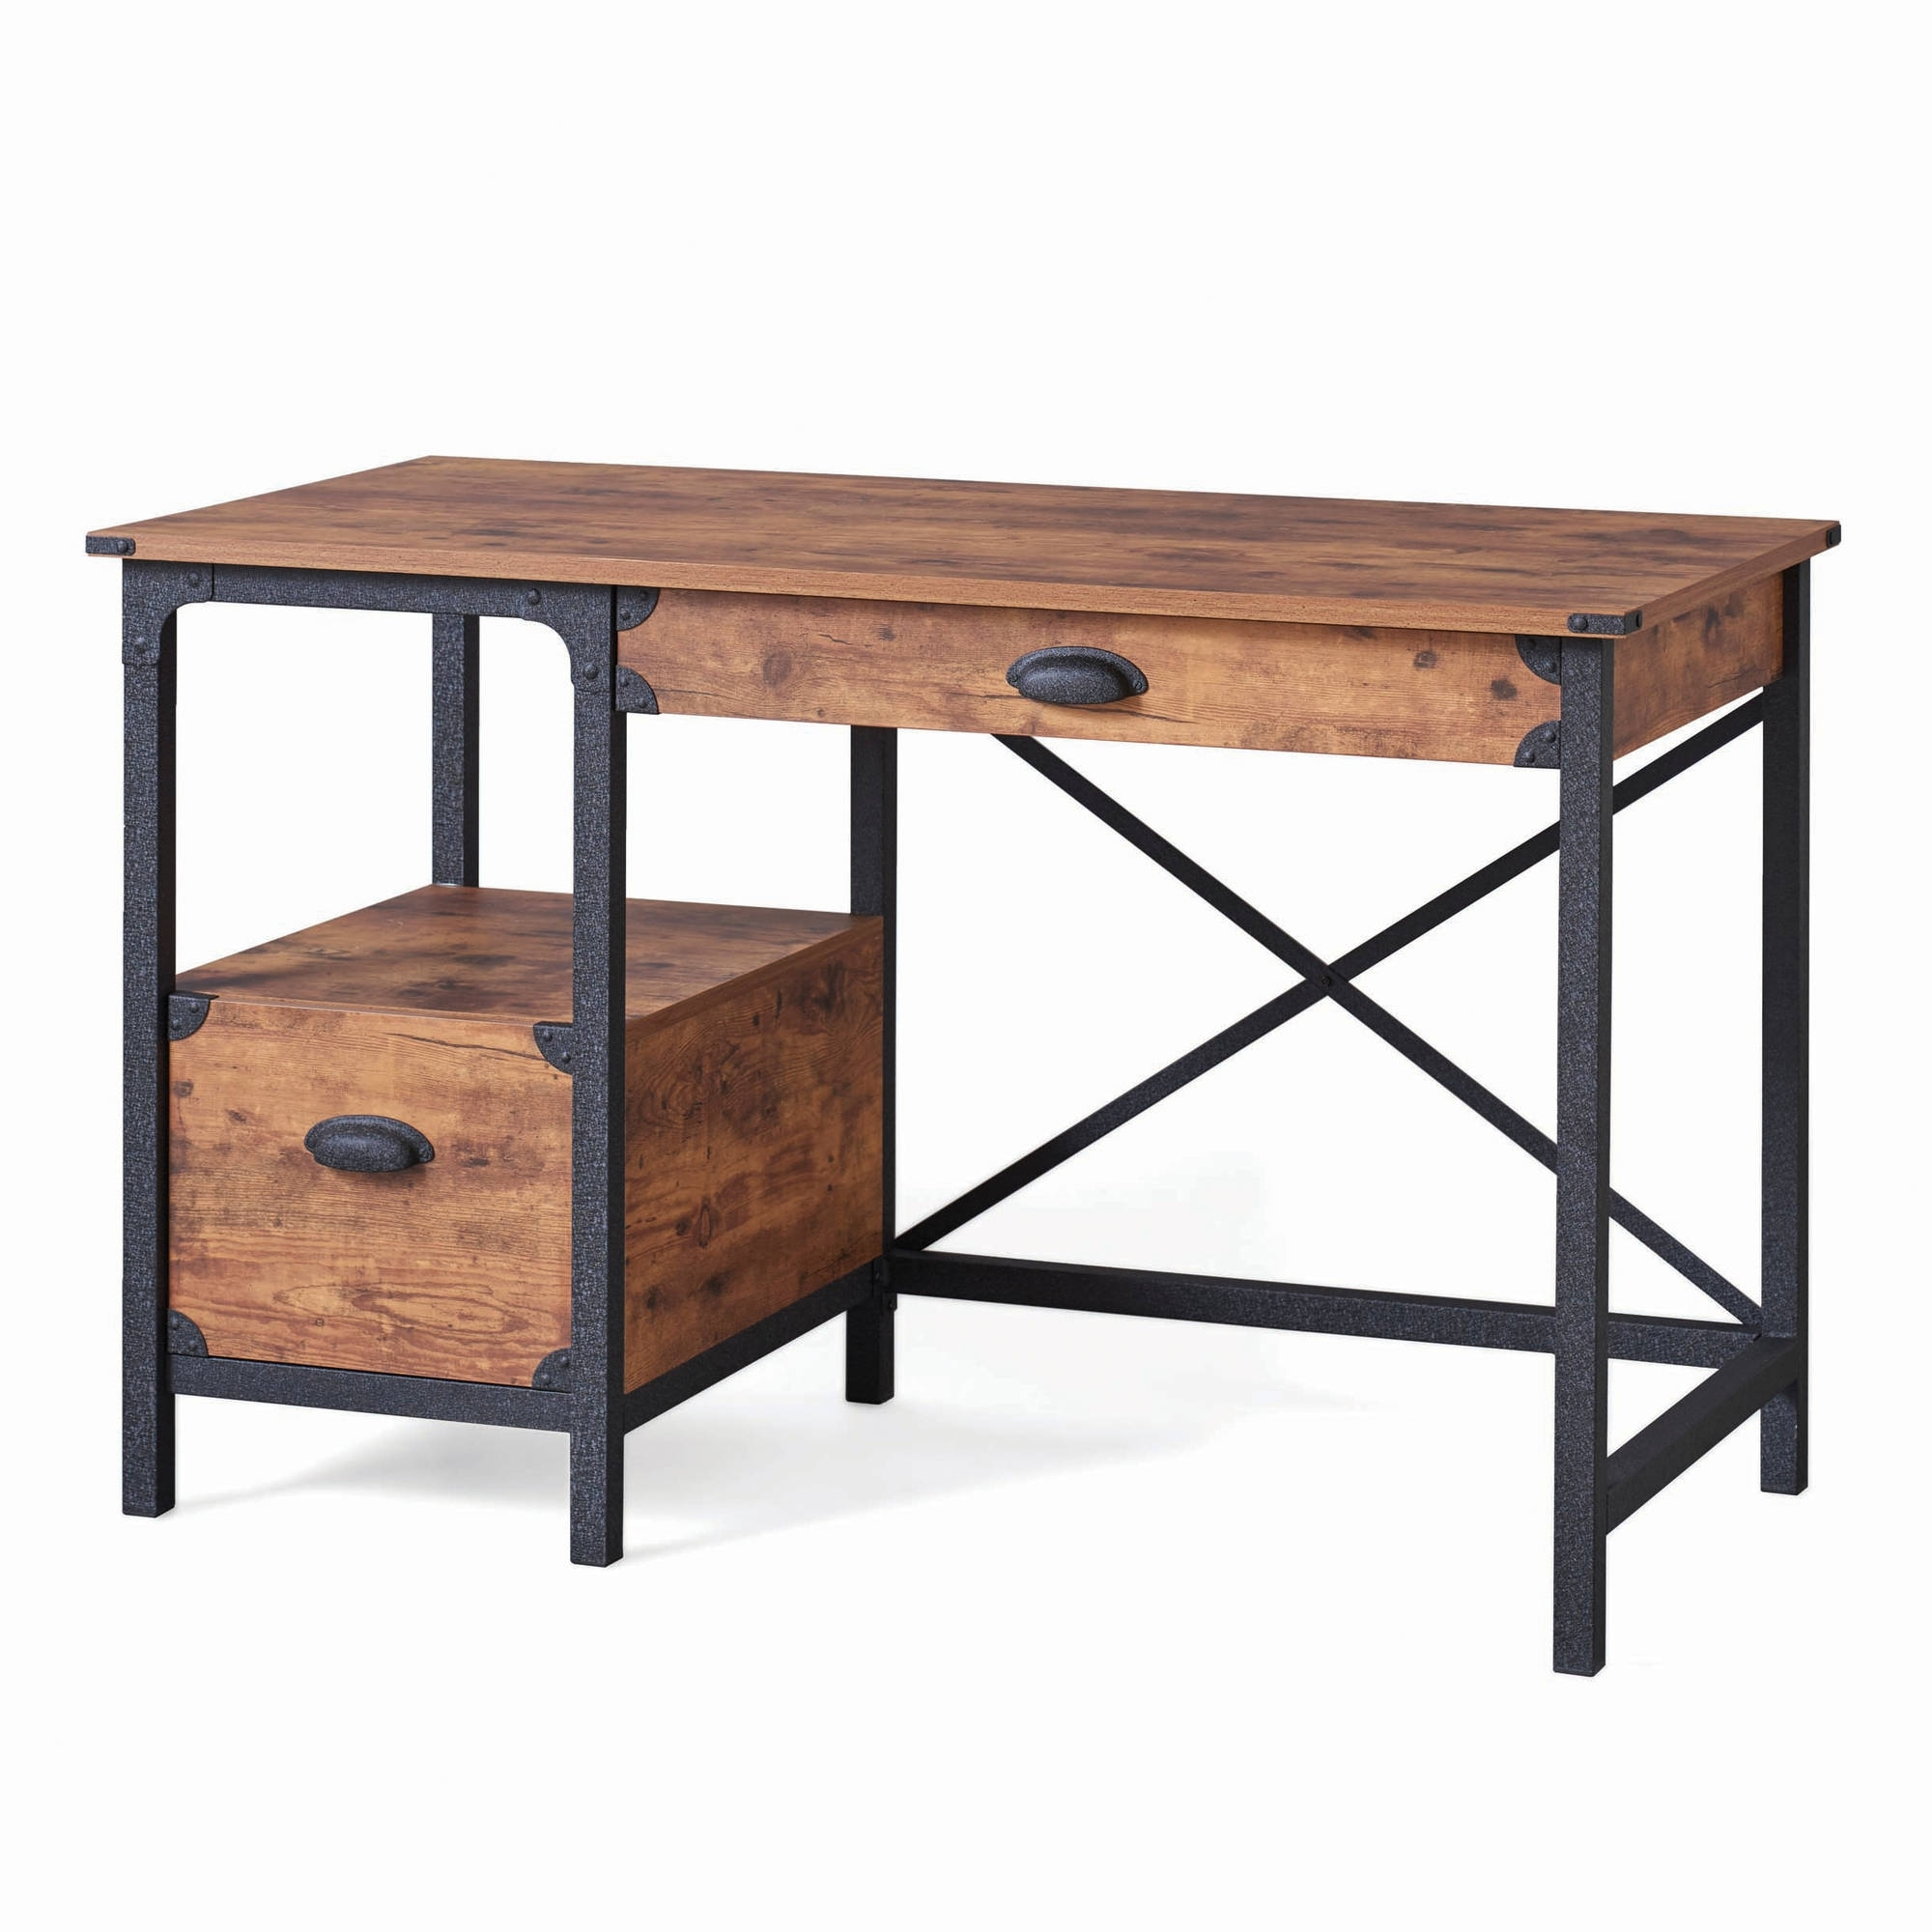 Most Recent Better Homes And Gardens Rustic Country Desk, Weathered Pine Within Rustic Computer Desks (Gallery 6 of 20)